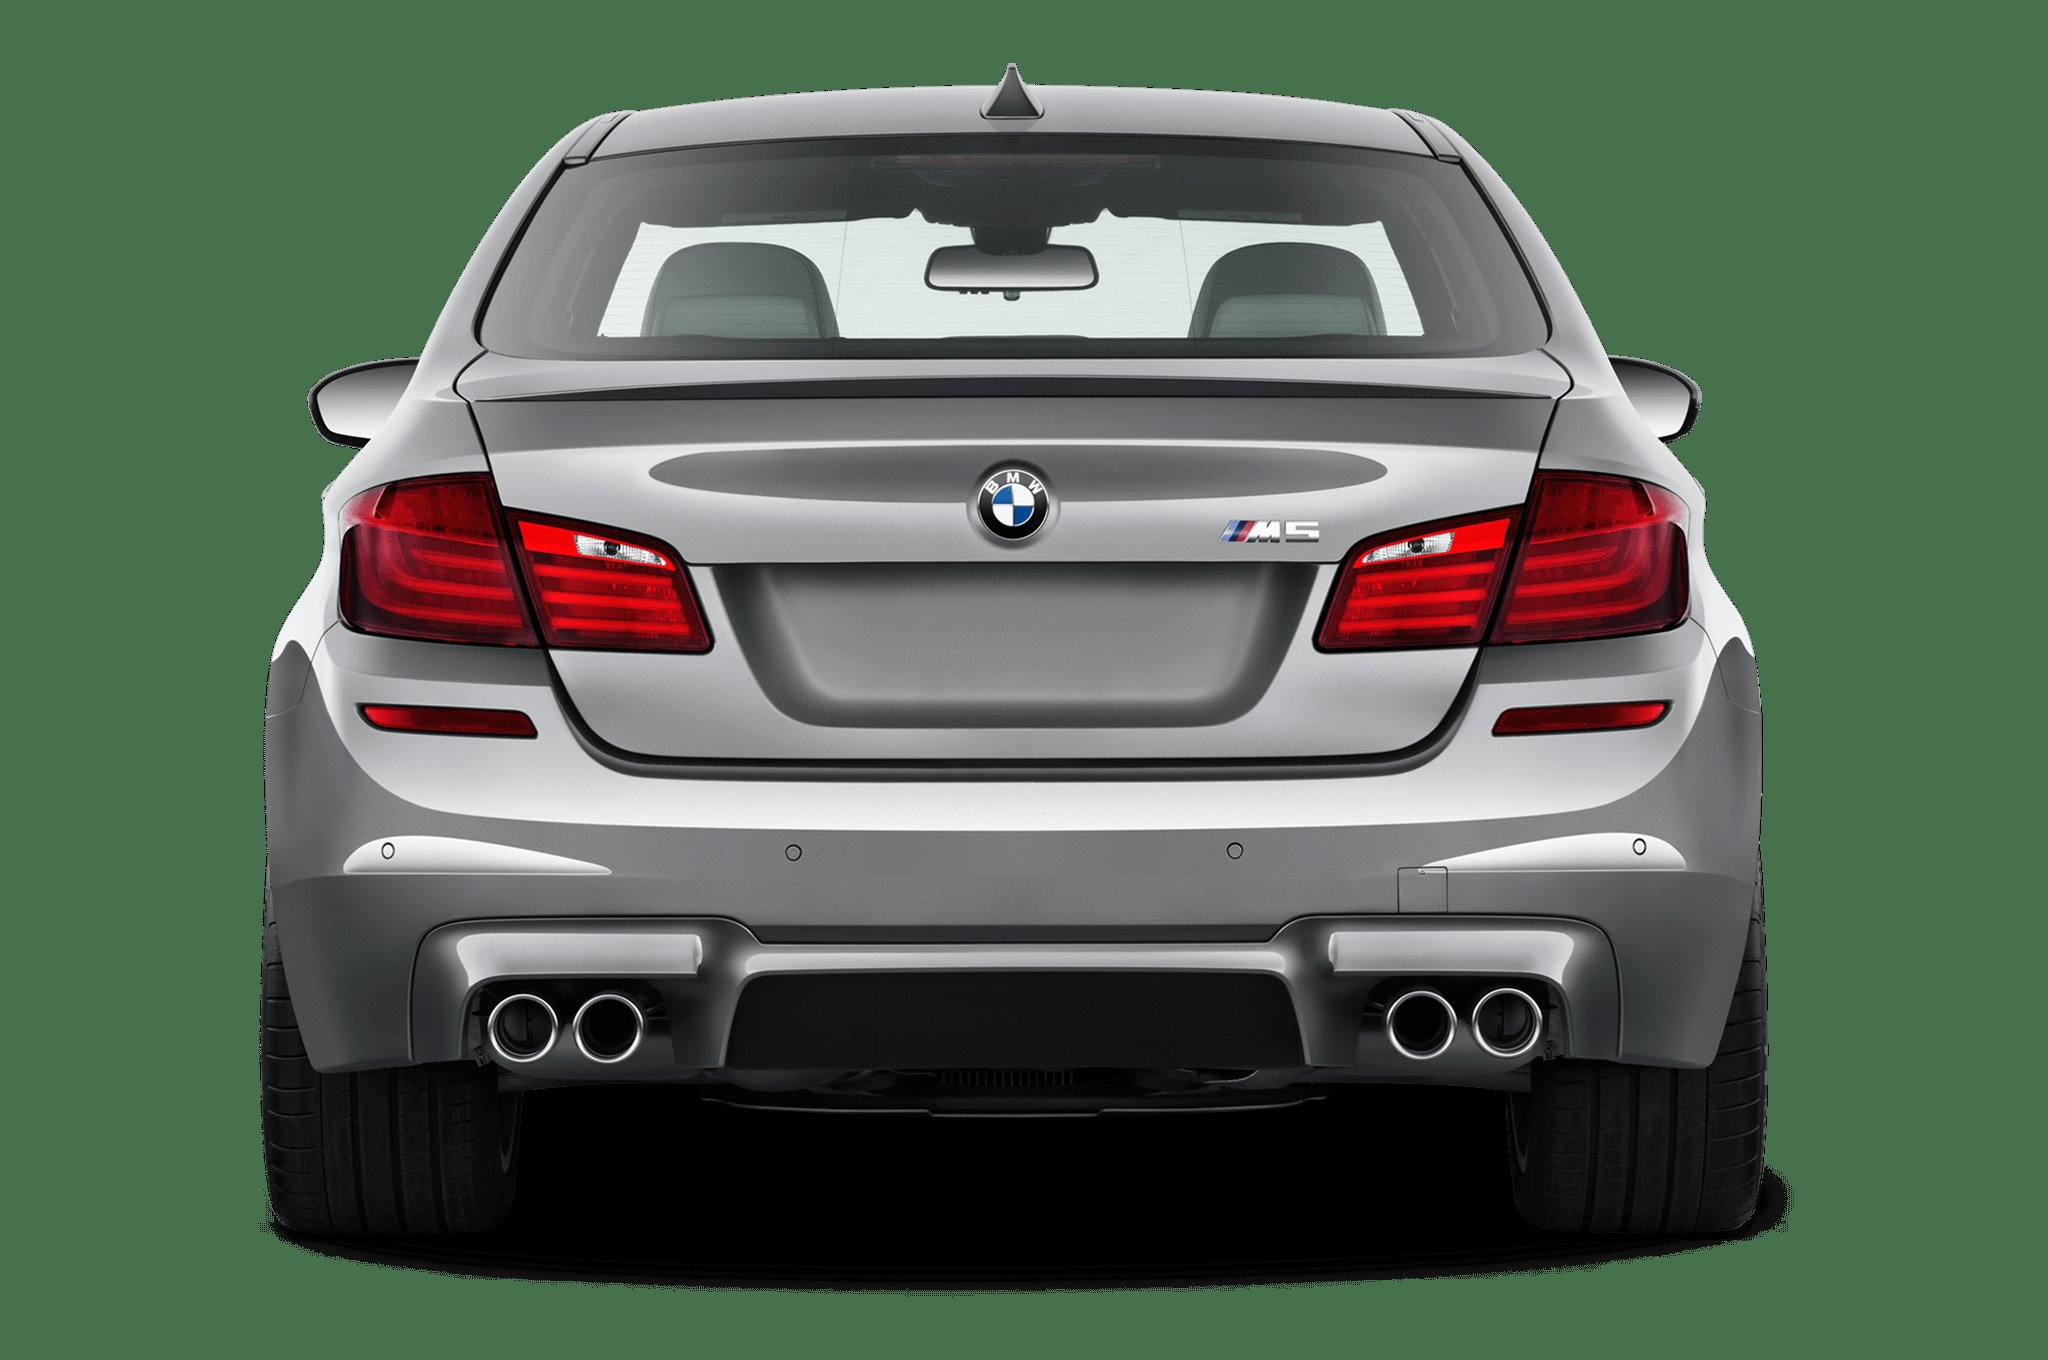 Latest 2015 Technology Of The Year Bmw Project I Automobile Free Download